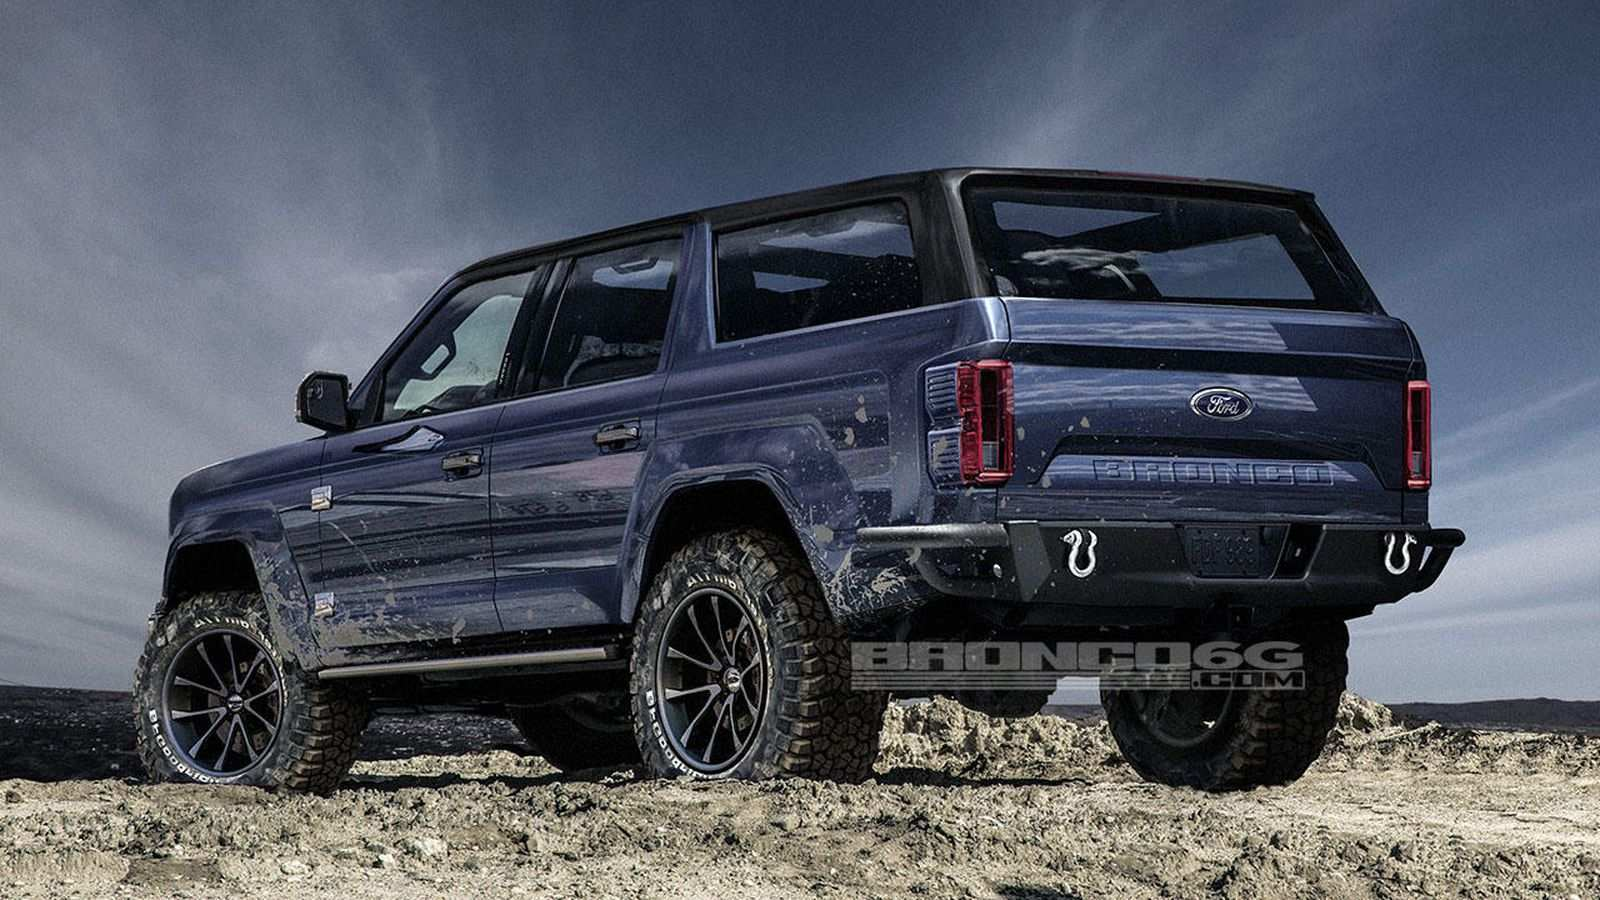 20 New 2020 Ford Bronco Wallpaper New Review for 2020 Ford Bronco Wallpaper